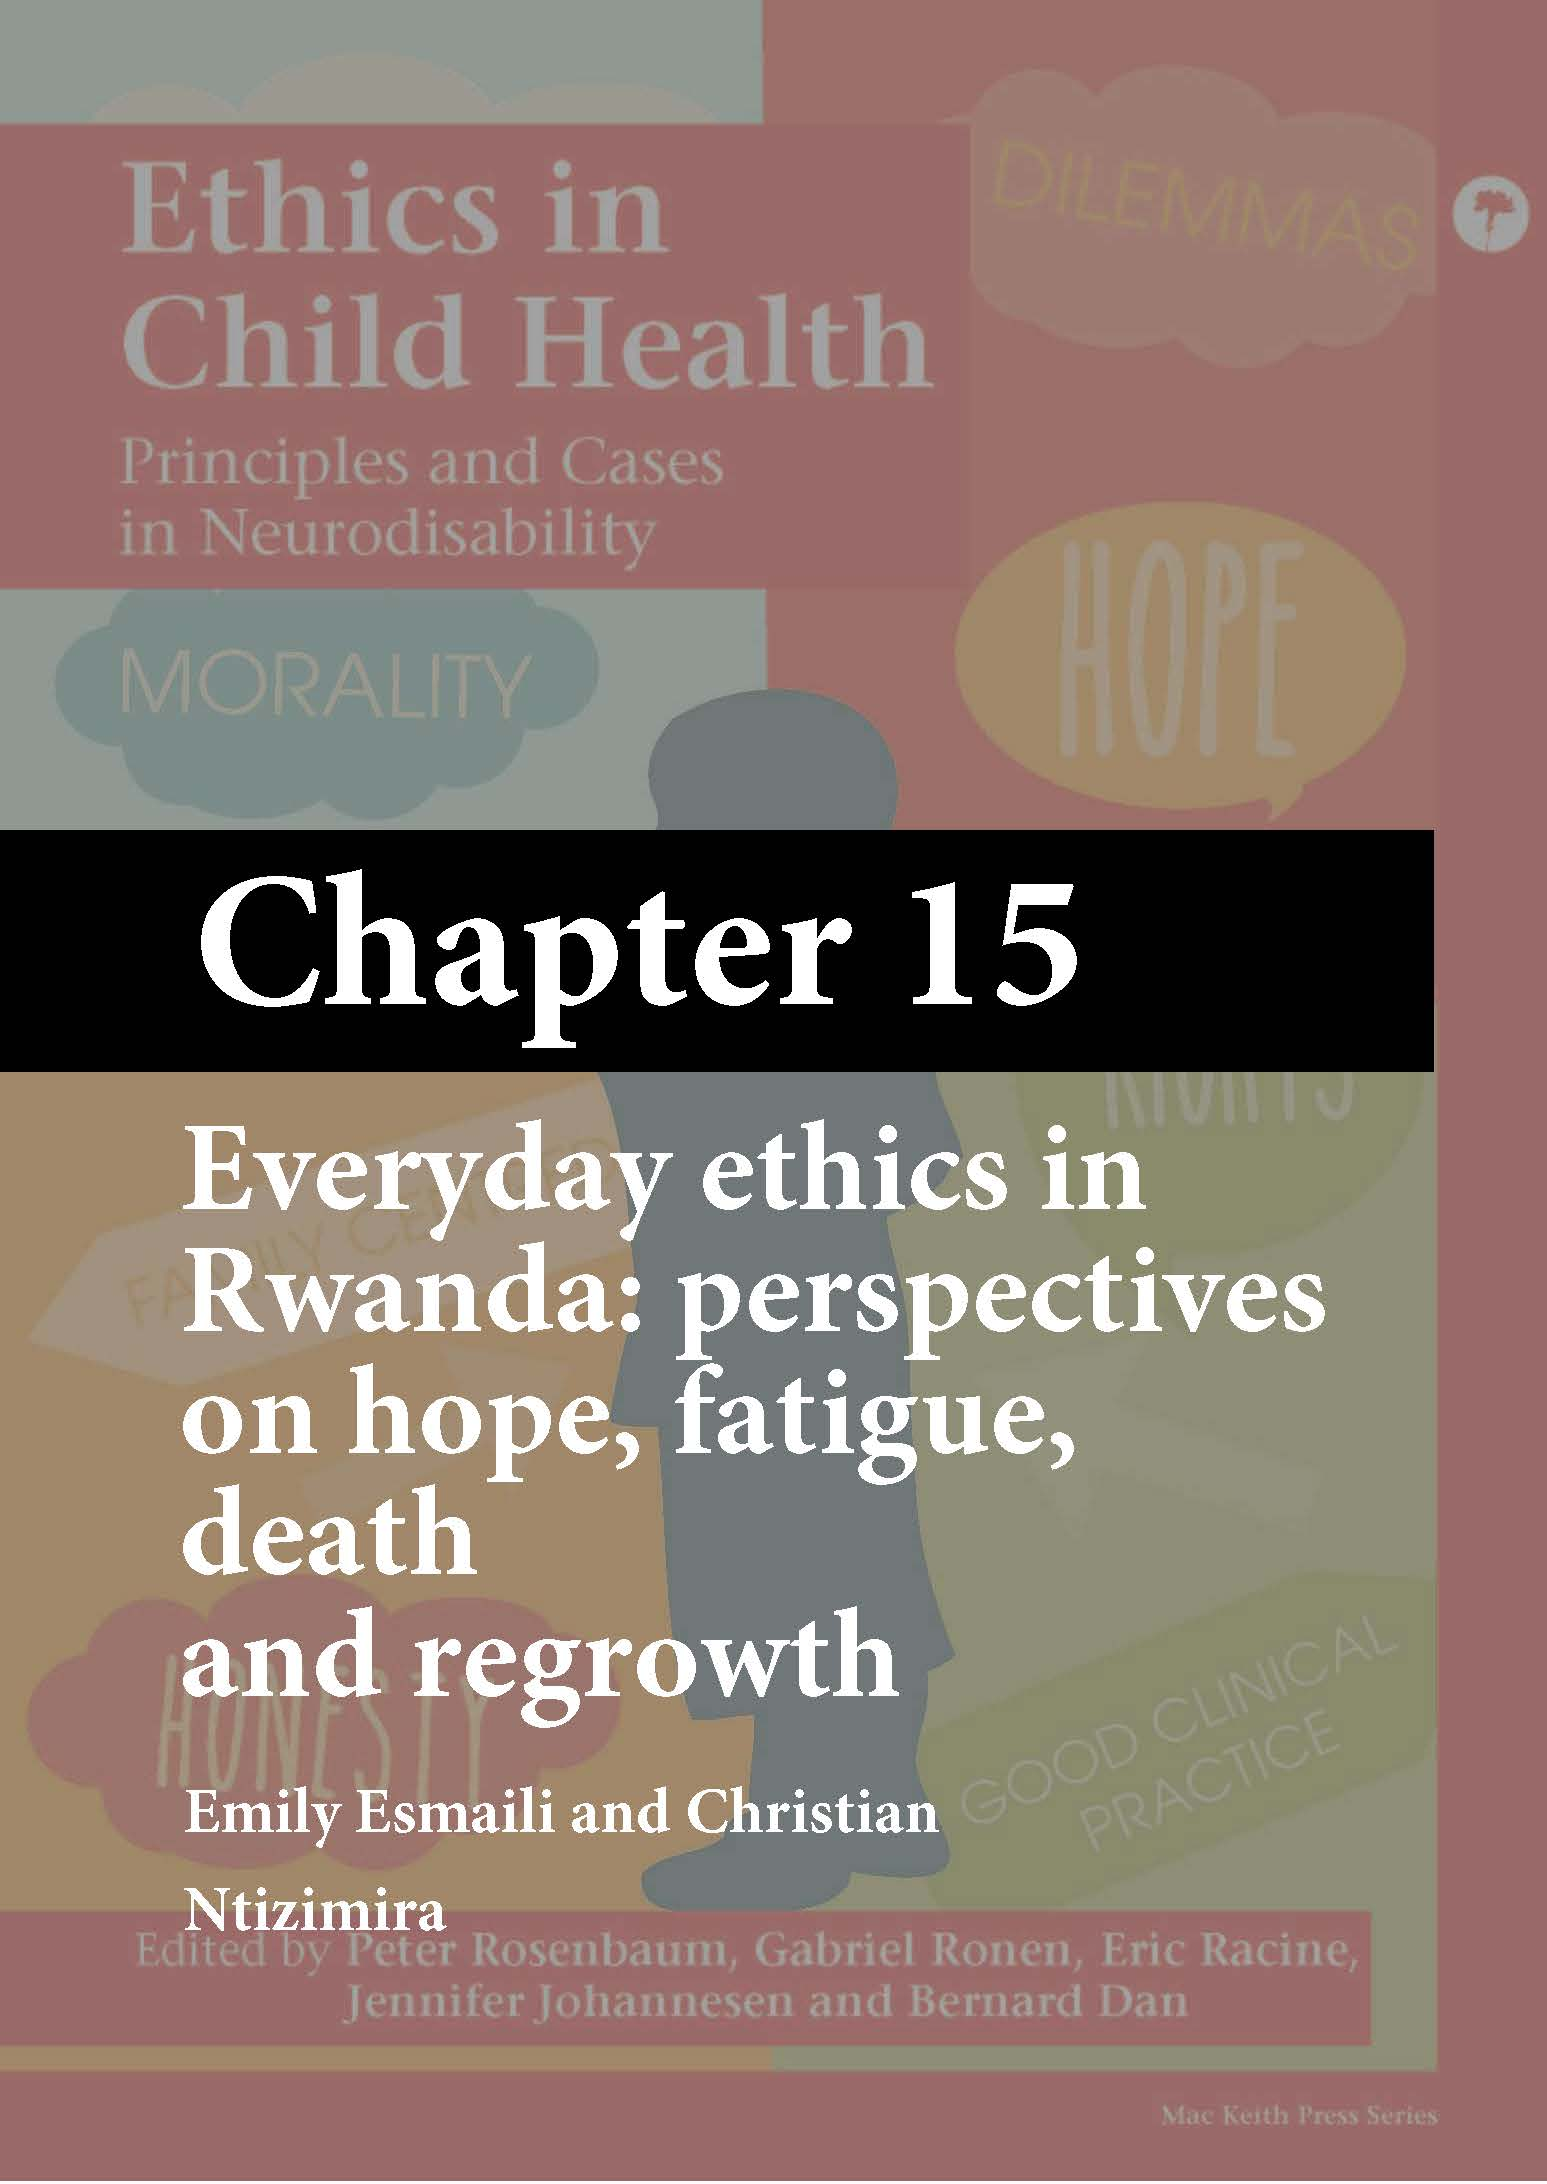 Ethics in Child Health, Rosenbaum, Chapter 15 cover